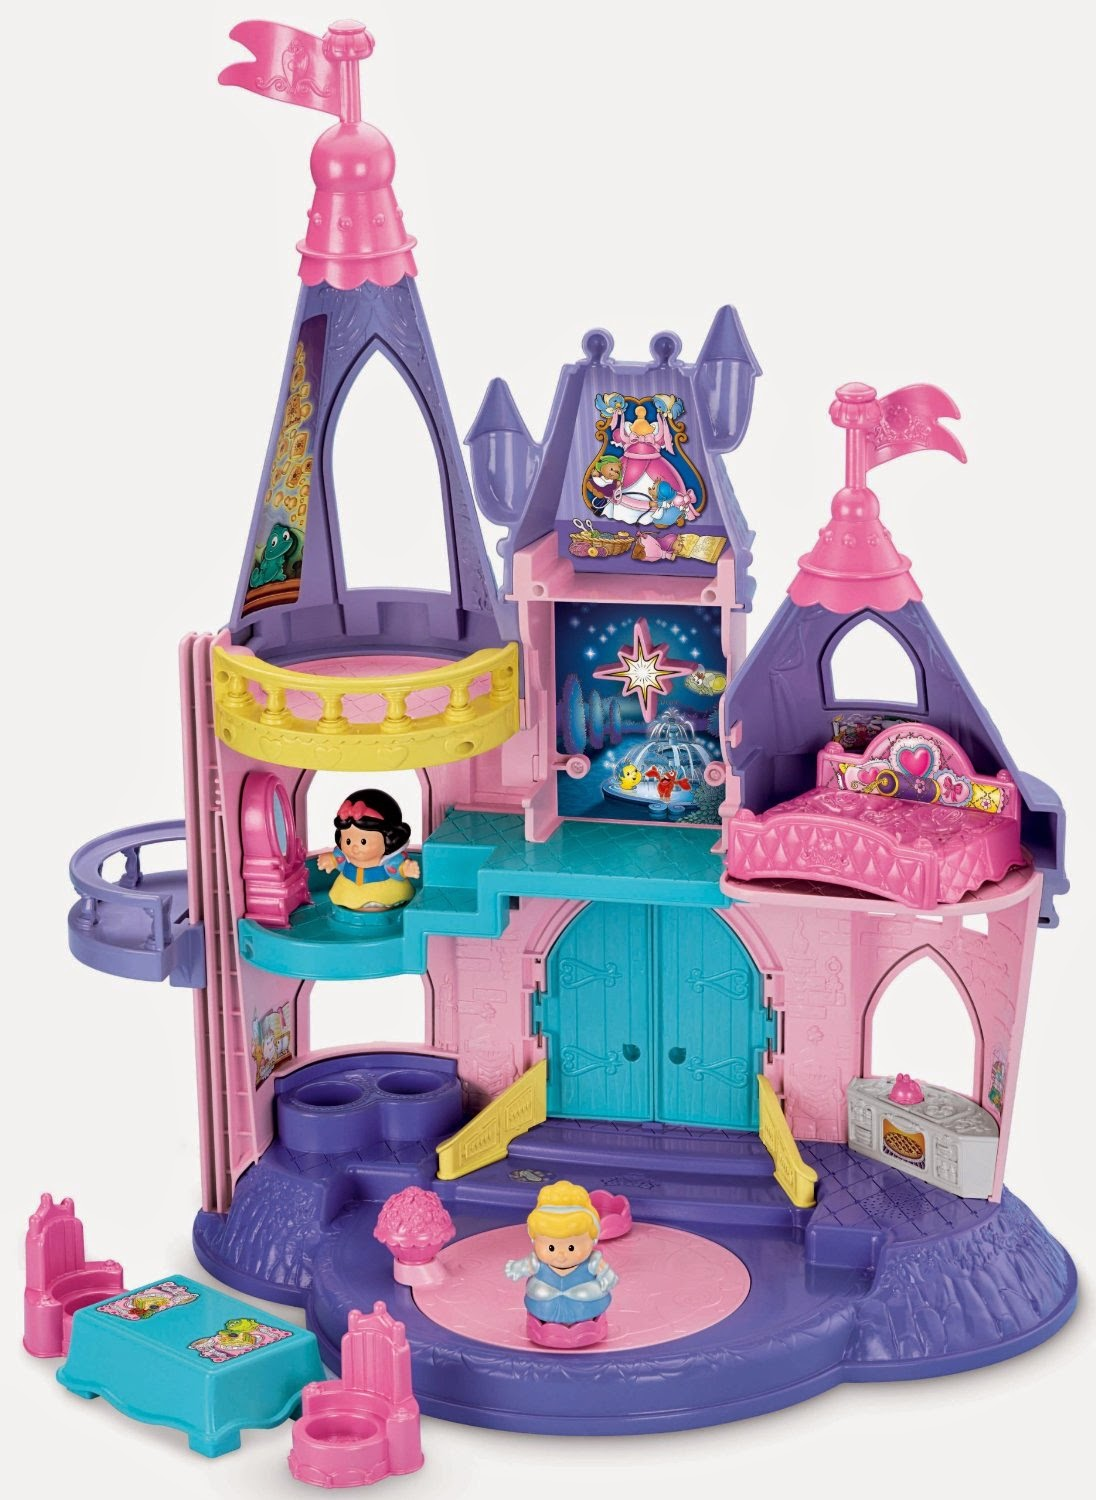 Princess Toys For 3 Year Olds : Toddler approved favorite gifts for year olds